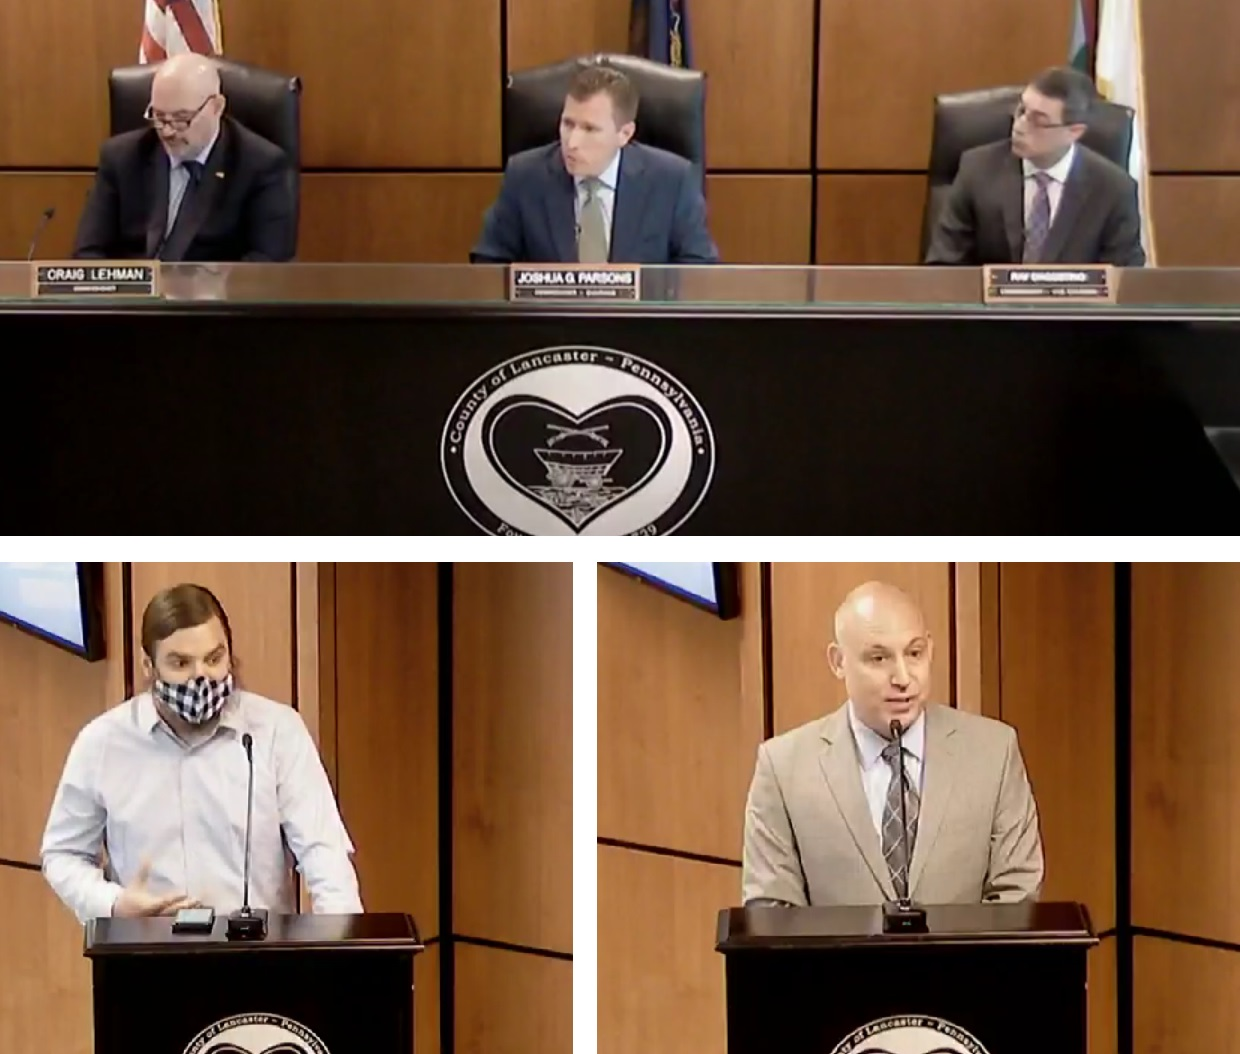 Top row, from left: Lancaster County commissioners Craig Lehman, Josh Parsons, and Ray D'Agostino. Bottom row, from left: Ben Cattell Noll, Dr. Michael Ripchinski. Online images taken from the commissioners meeting on Wednesday, May 26, 2021.